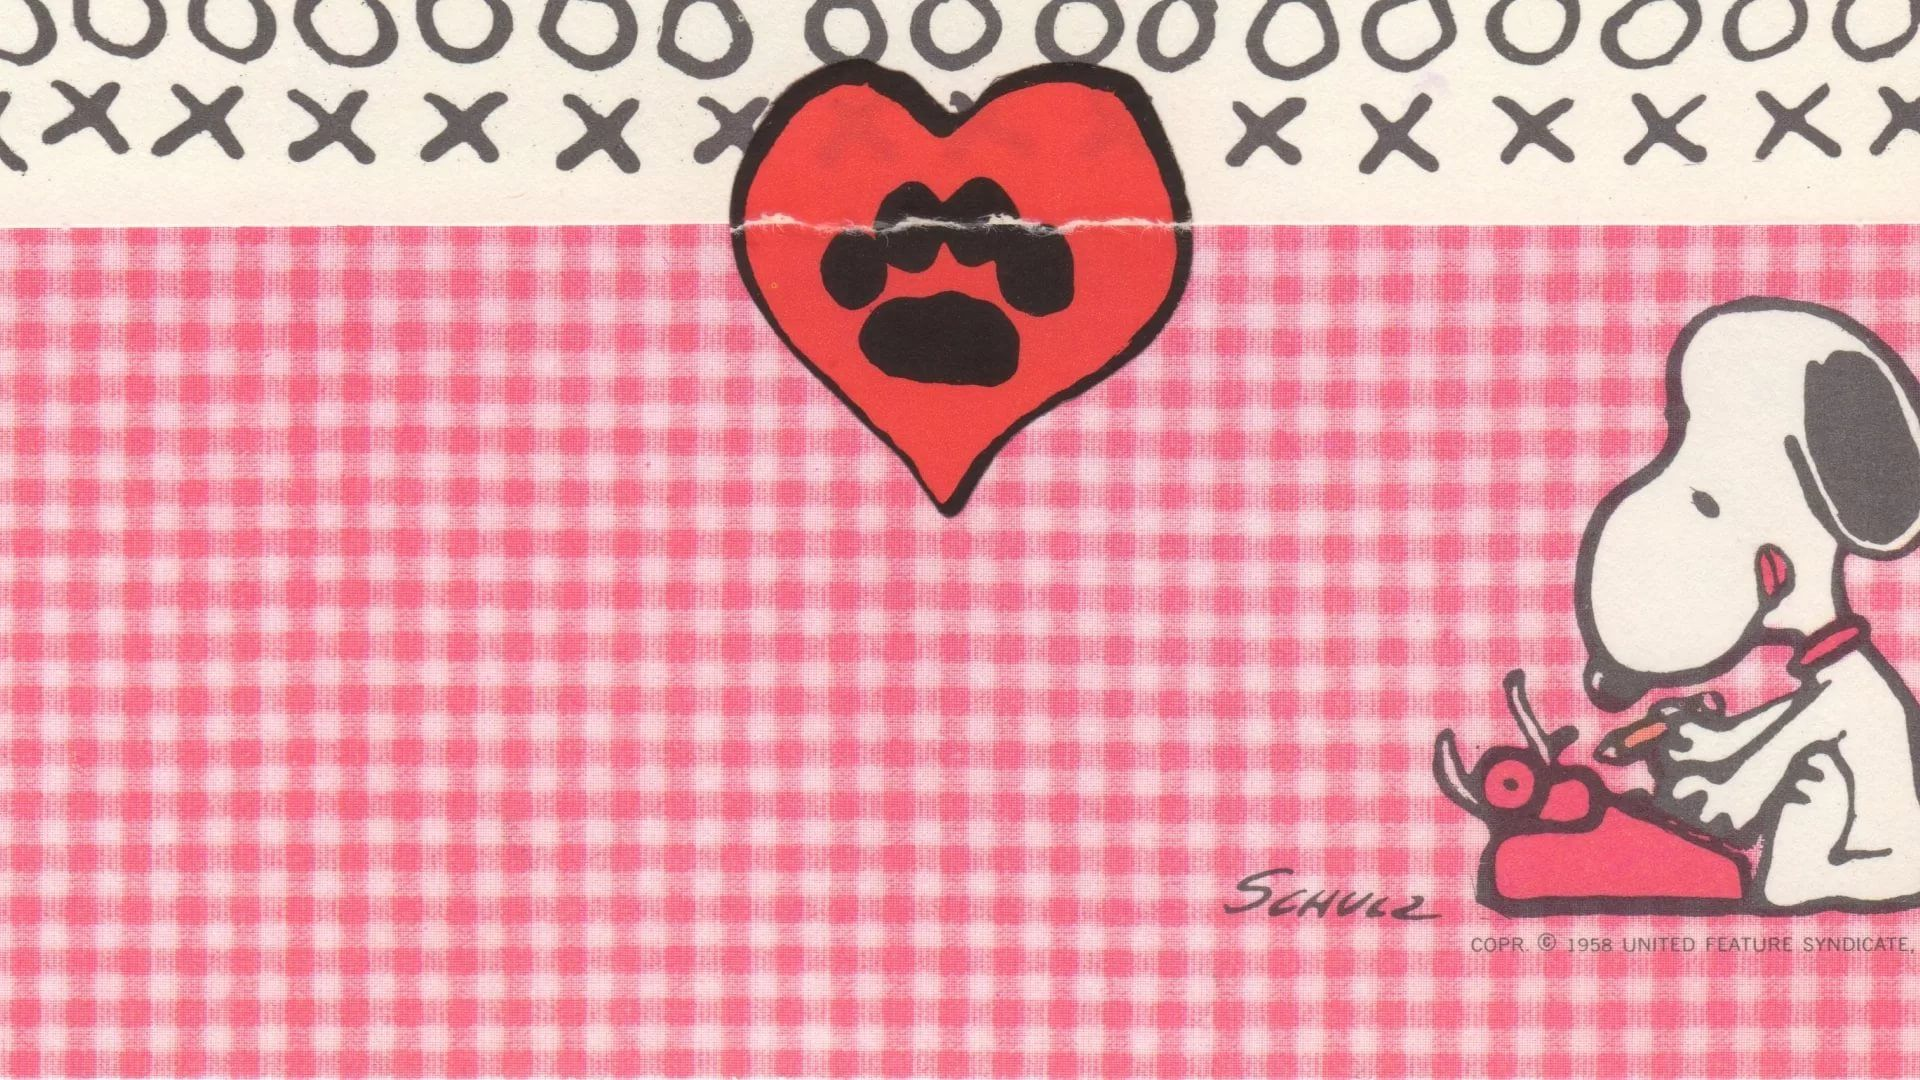 Snoopy Valentines Day hd wallpaper